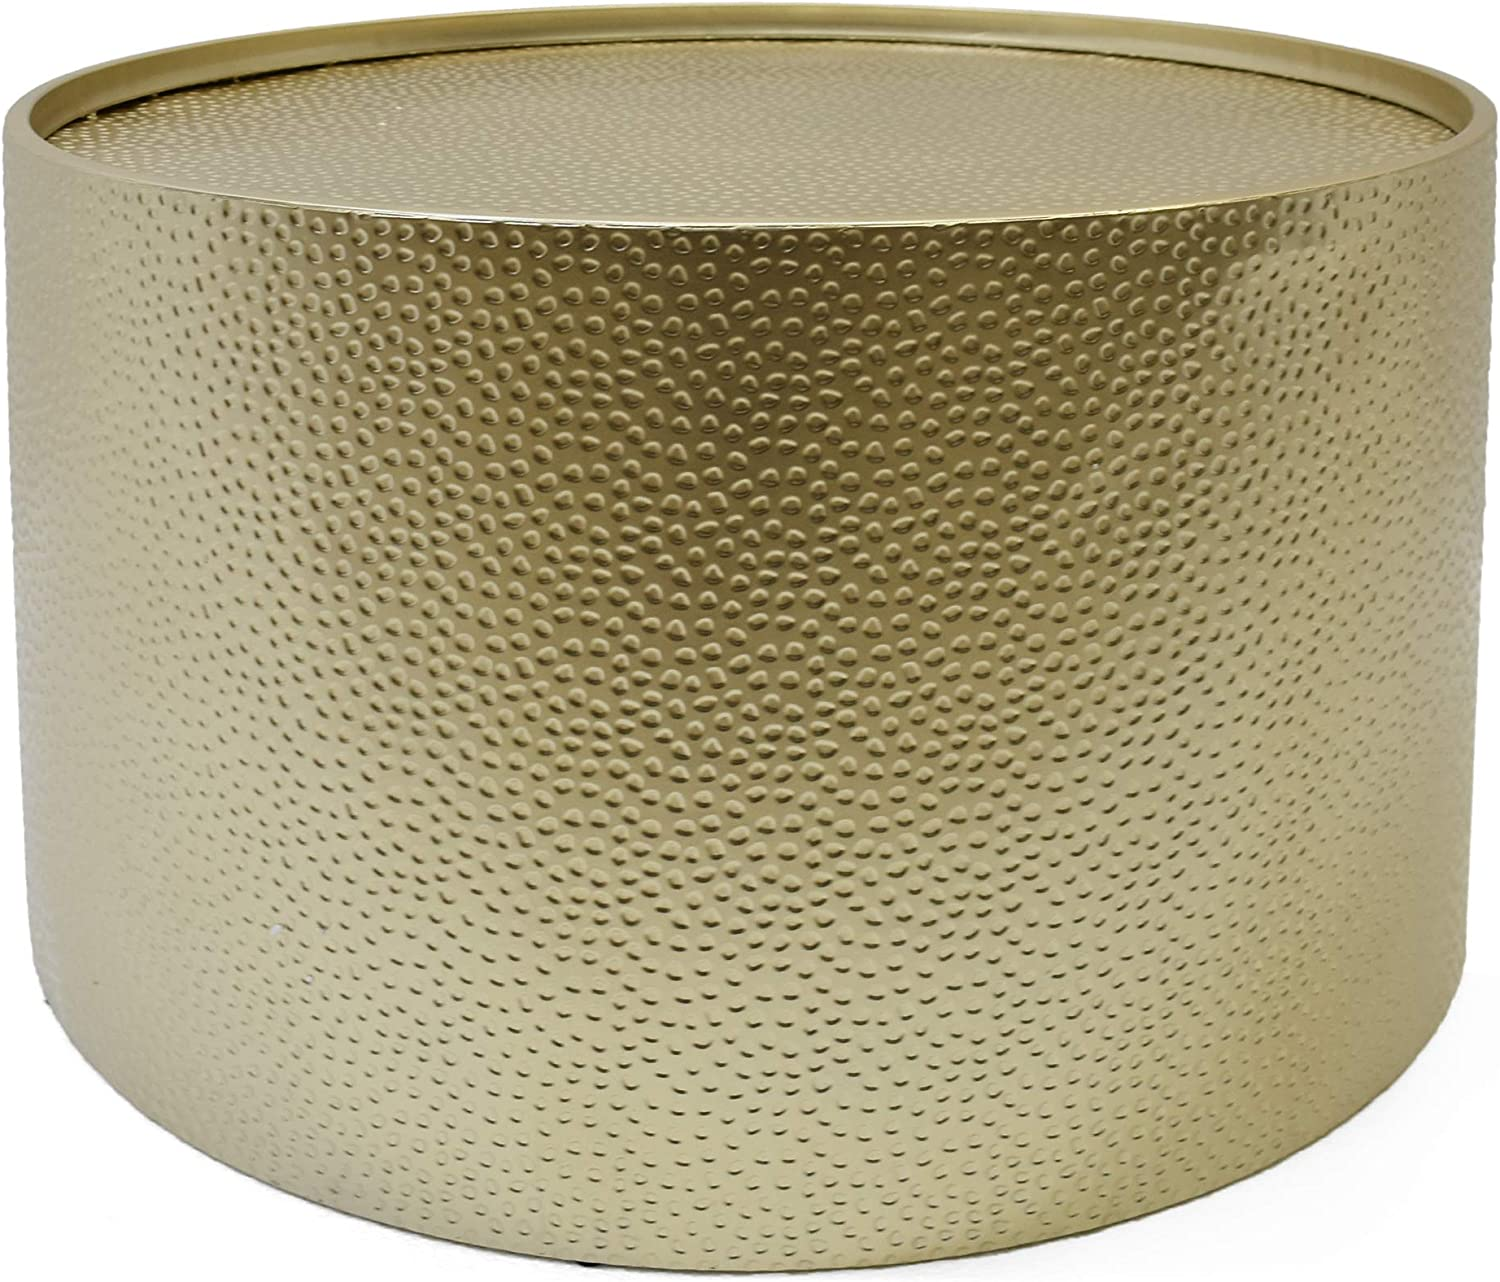 """Christopher Knight Home 308945 Rache Modern Round Coffee Table with Hammered Iron, Gold, 26. 00"""" L x 26. 00"""" W x 17. 00"""" H"""